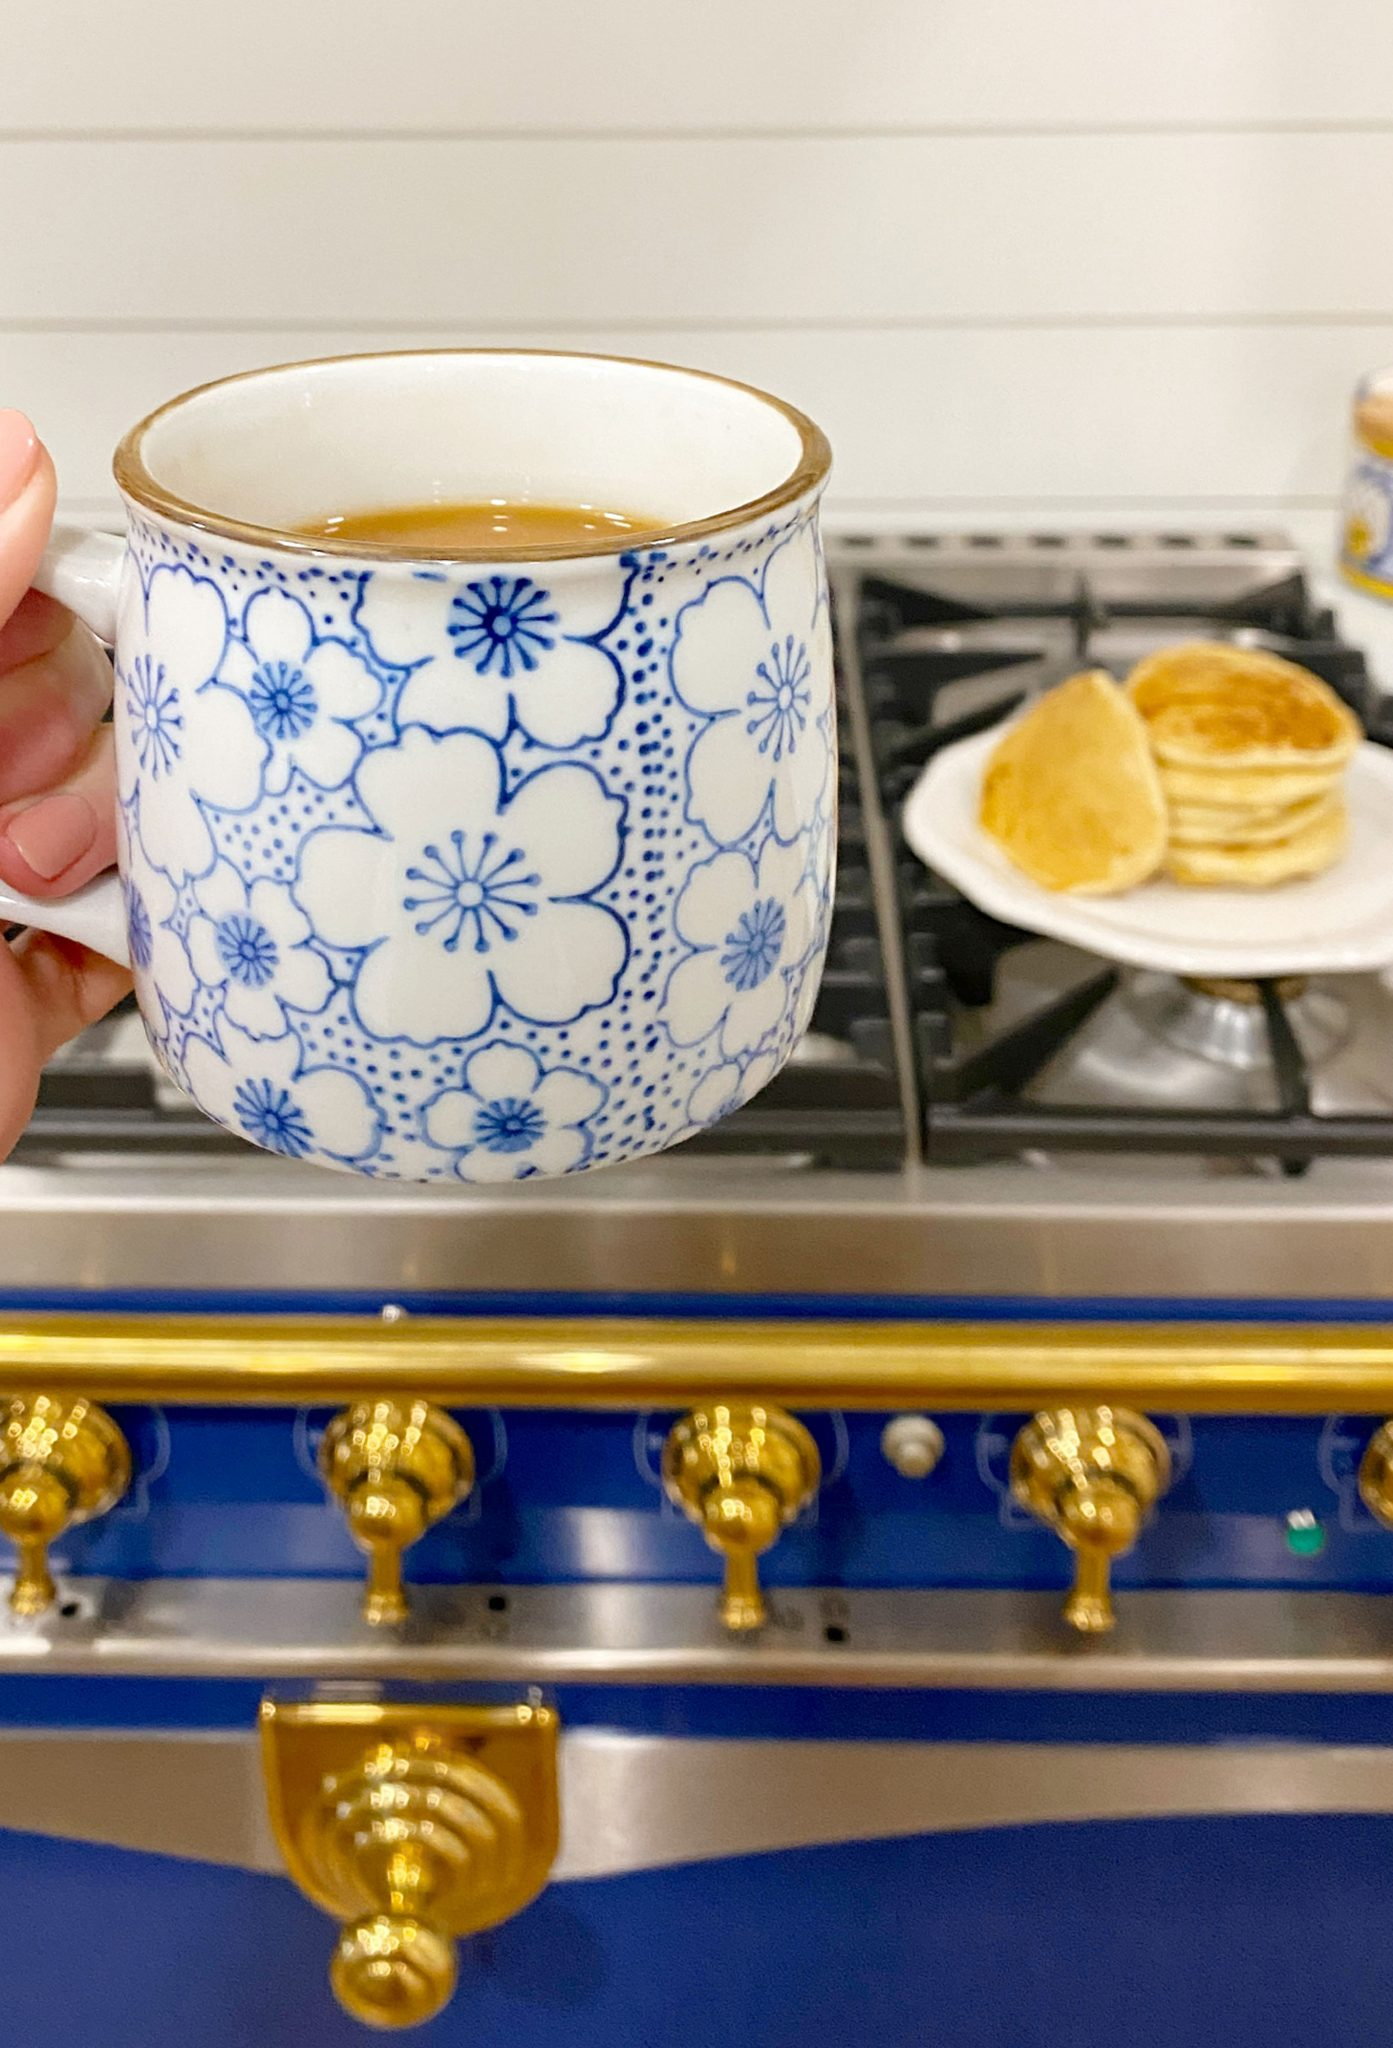 blue stove   Tuesday Morning Musings   177